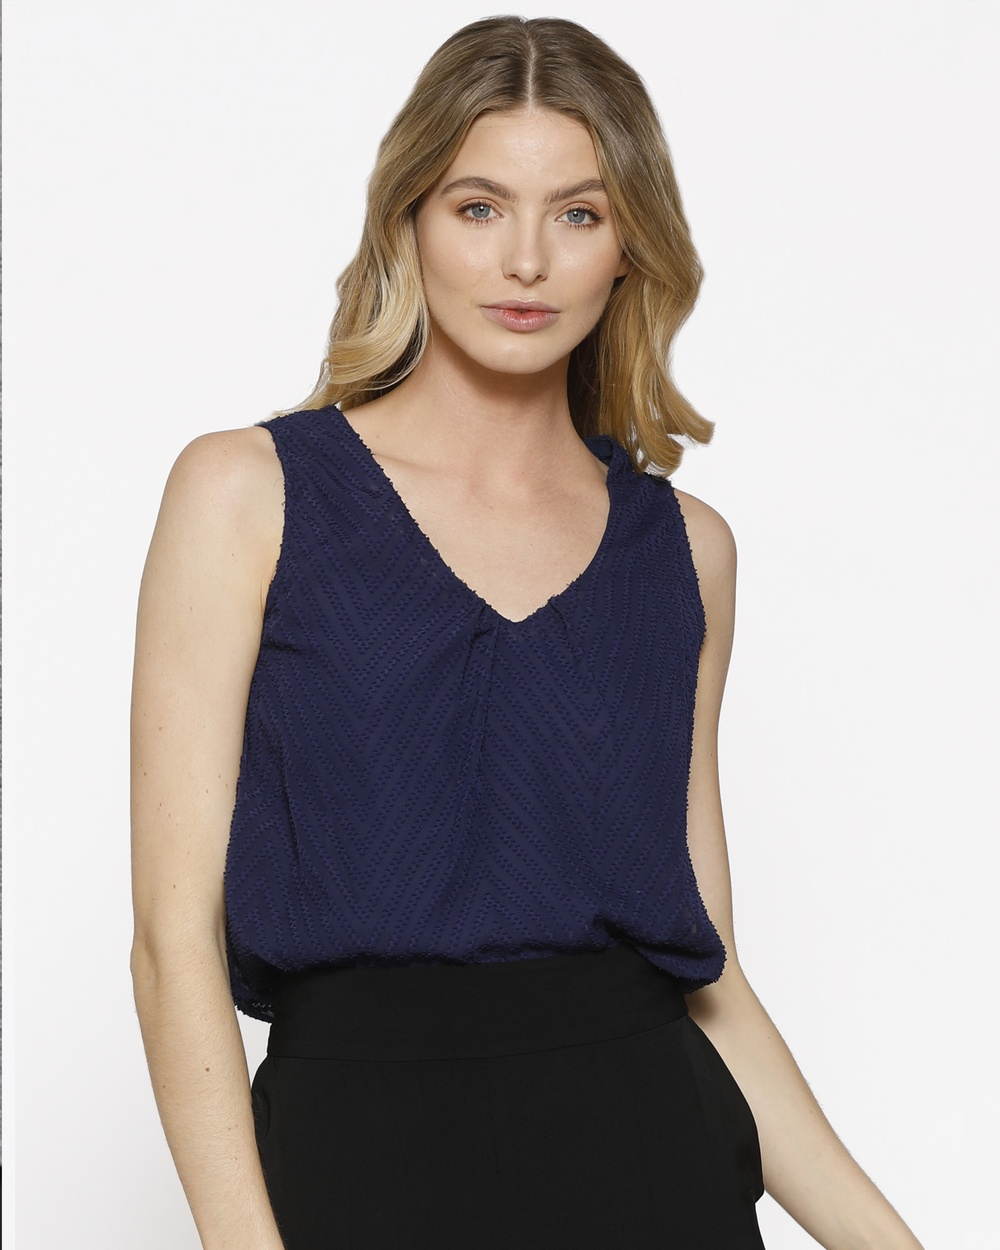 PIZZUTO Blue Bircardi Top Tops Navy Blue Bircardi Top